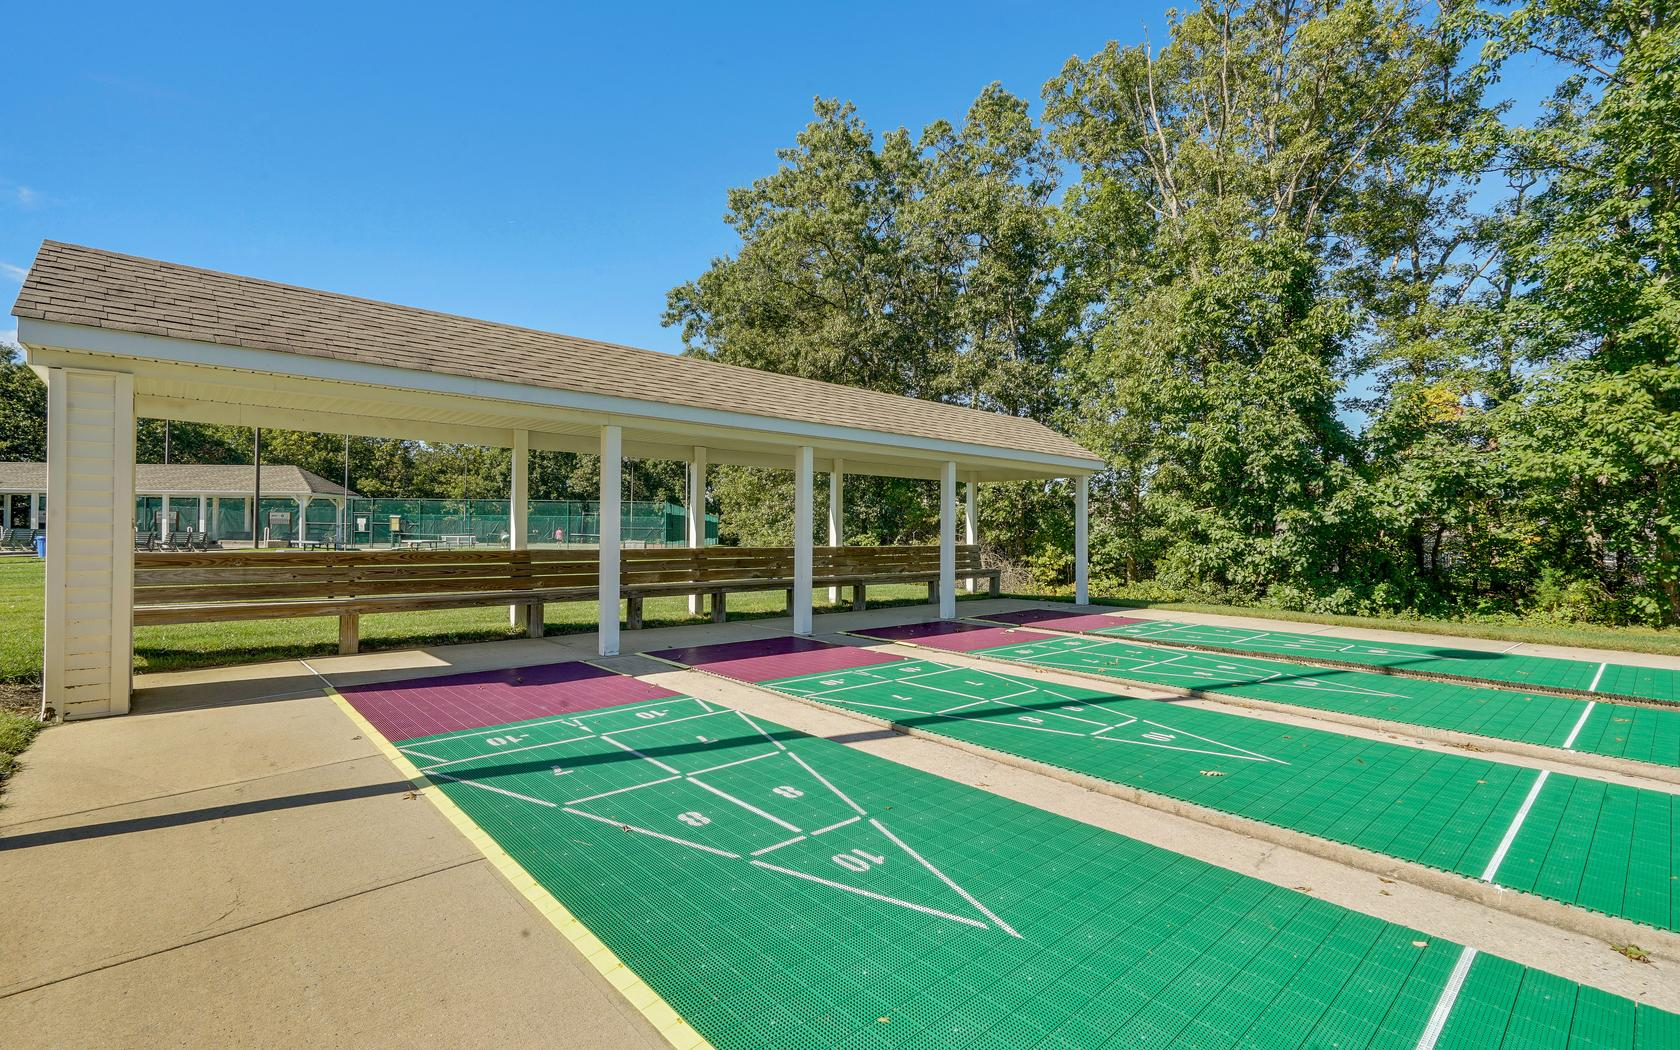 Additional photo for property listing at Fantastic Fairways IV 26 Ivy Hill Rd Lakewood, New Jersey 08701 États-Unis